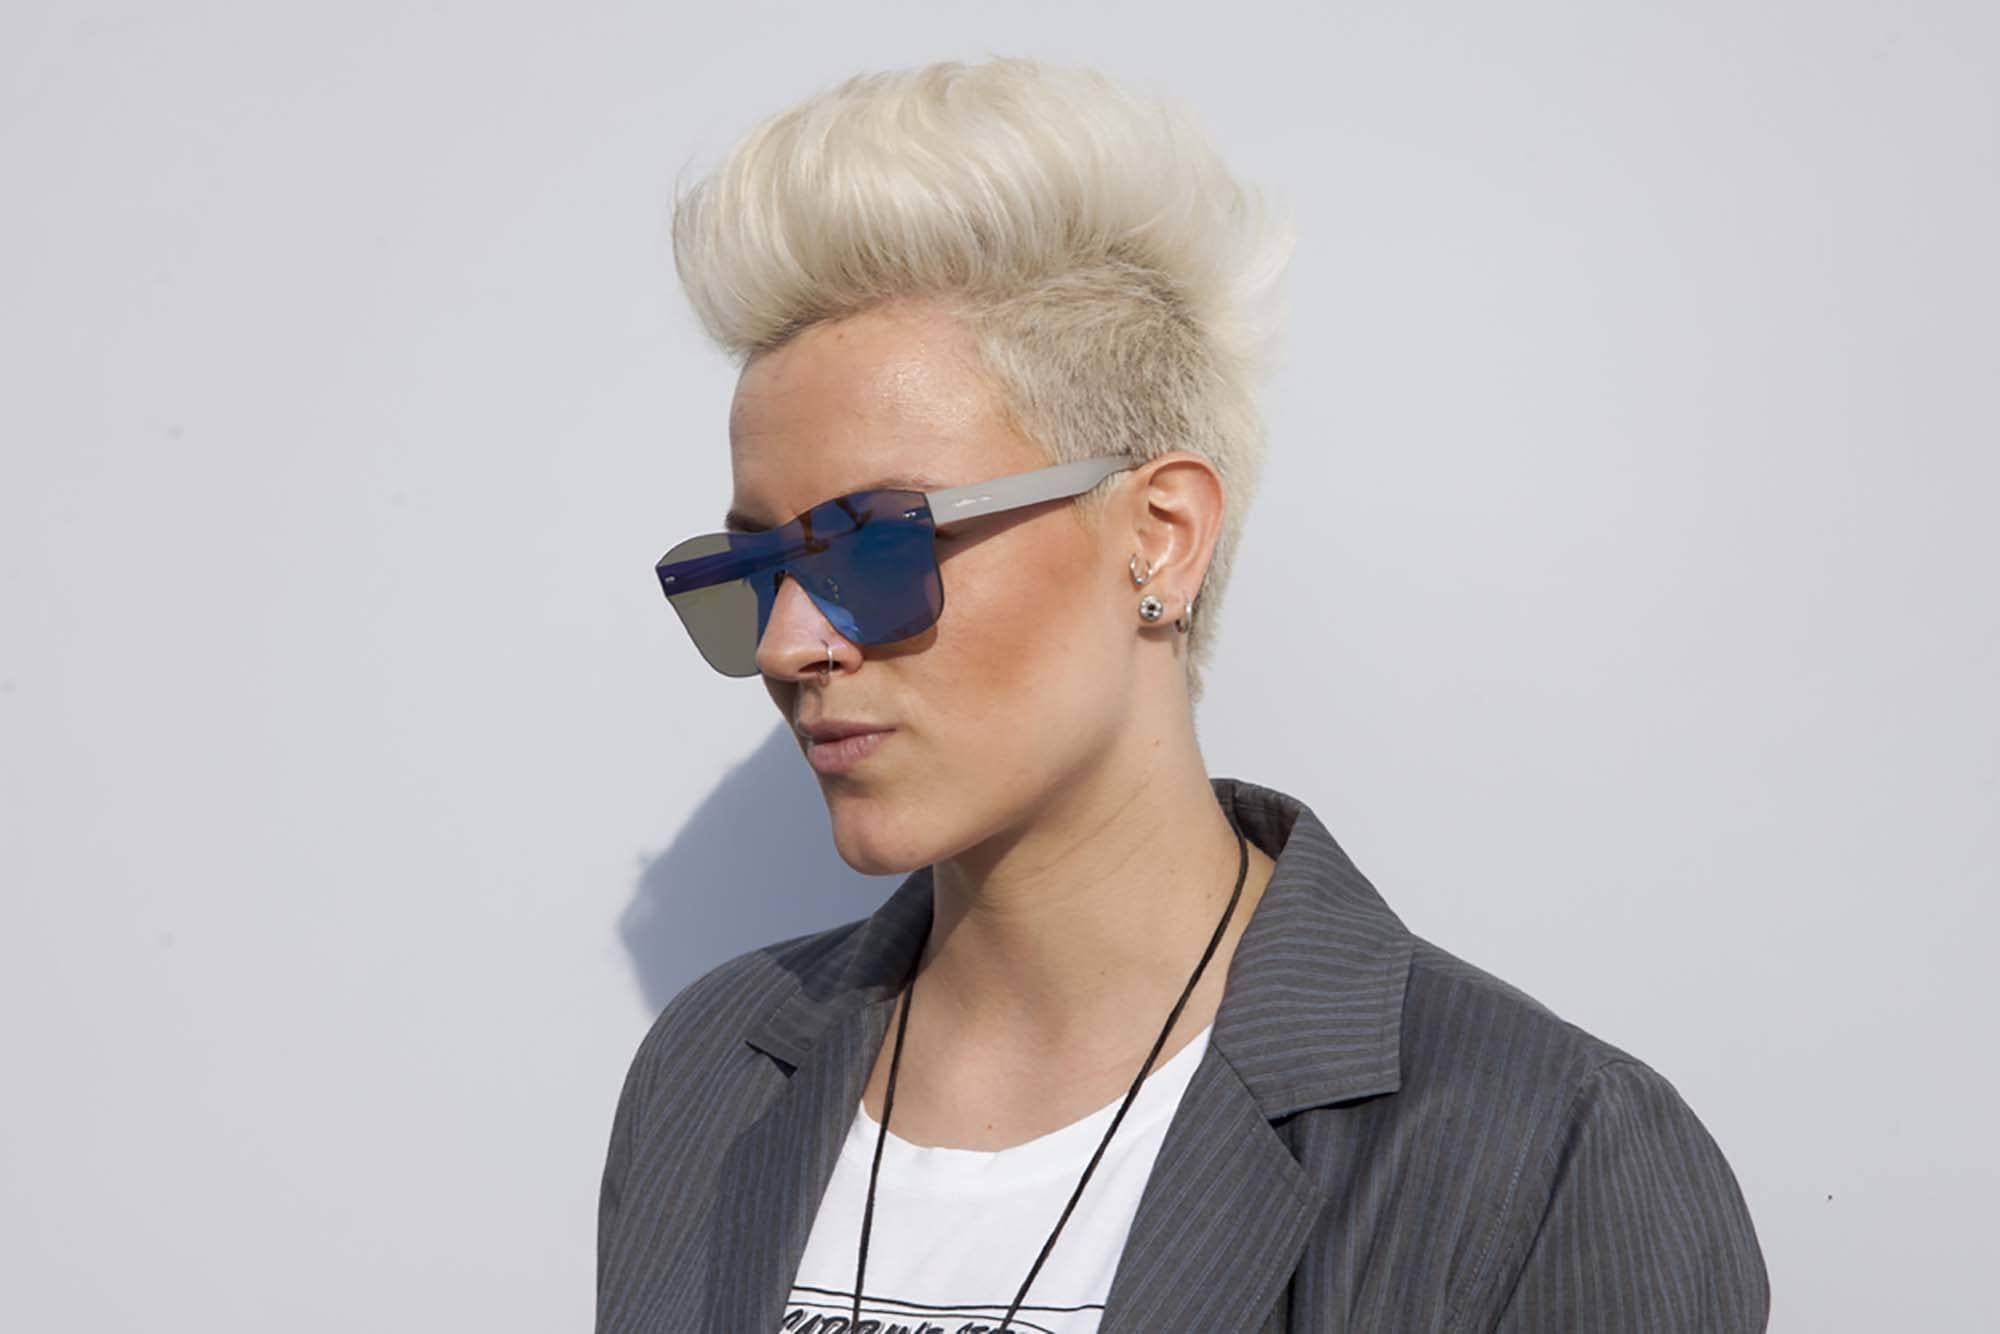 Mohawk Hairstyles for Women: Fashionable and On-Trend Short Hair Ideas